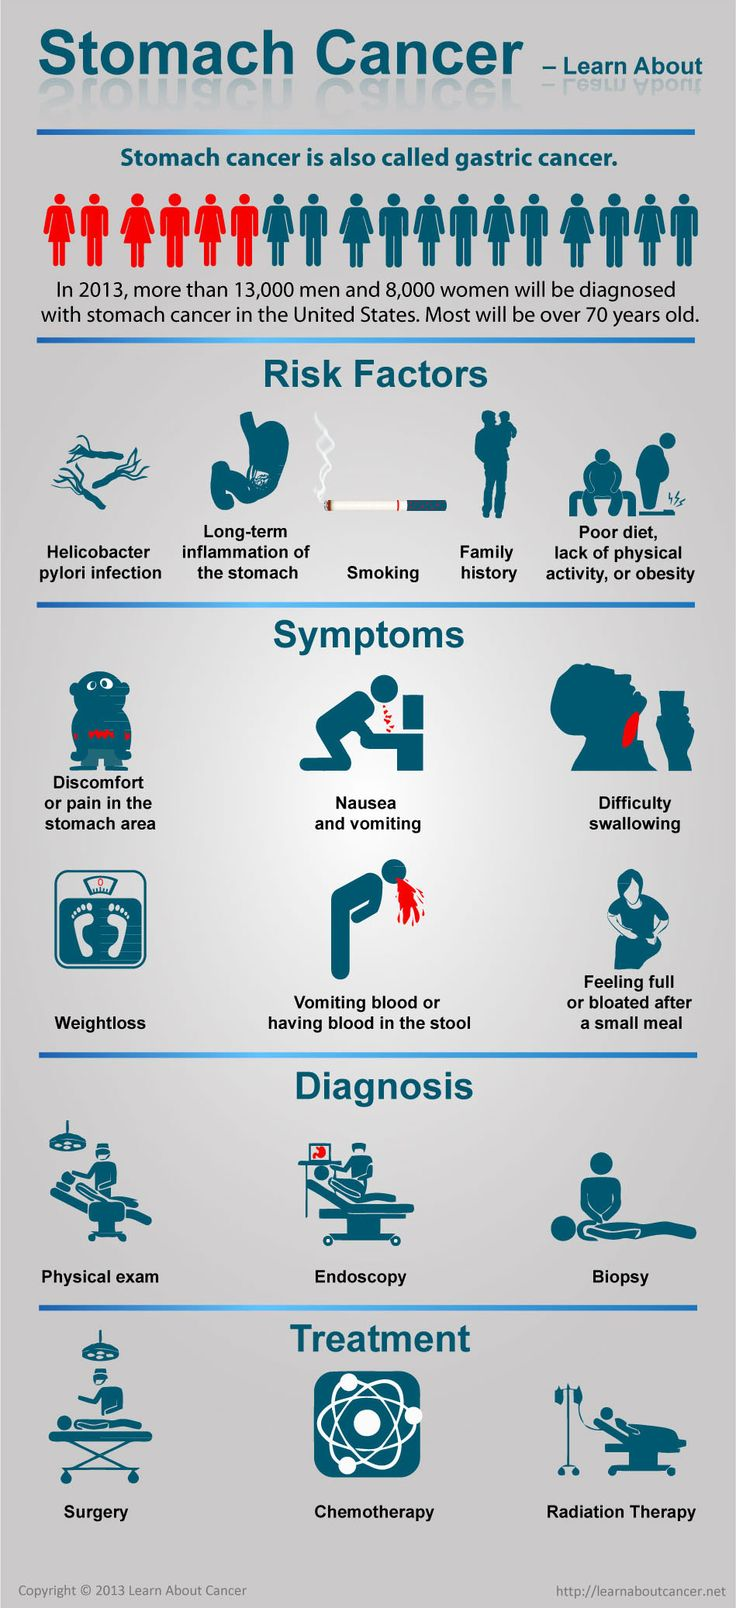 This infographic is about Stomach Cancer. Infographic describes Risk factors,  Symptoms, Diagnosis and Treatment for stomach cancer.  In 2013, more than 13,000 men and 8,000 women will be diagnosed with stomach cancer in the United States. Most will be over 70 years old.